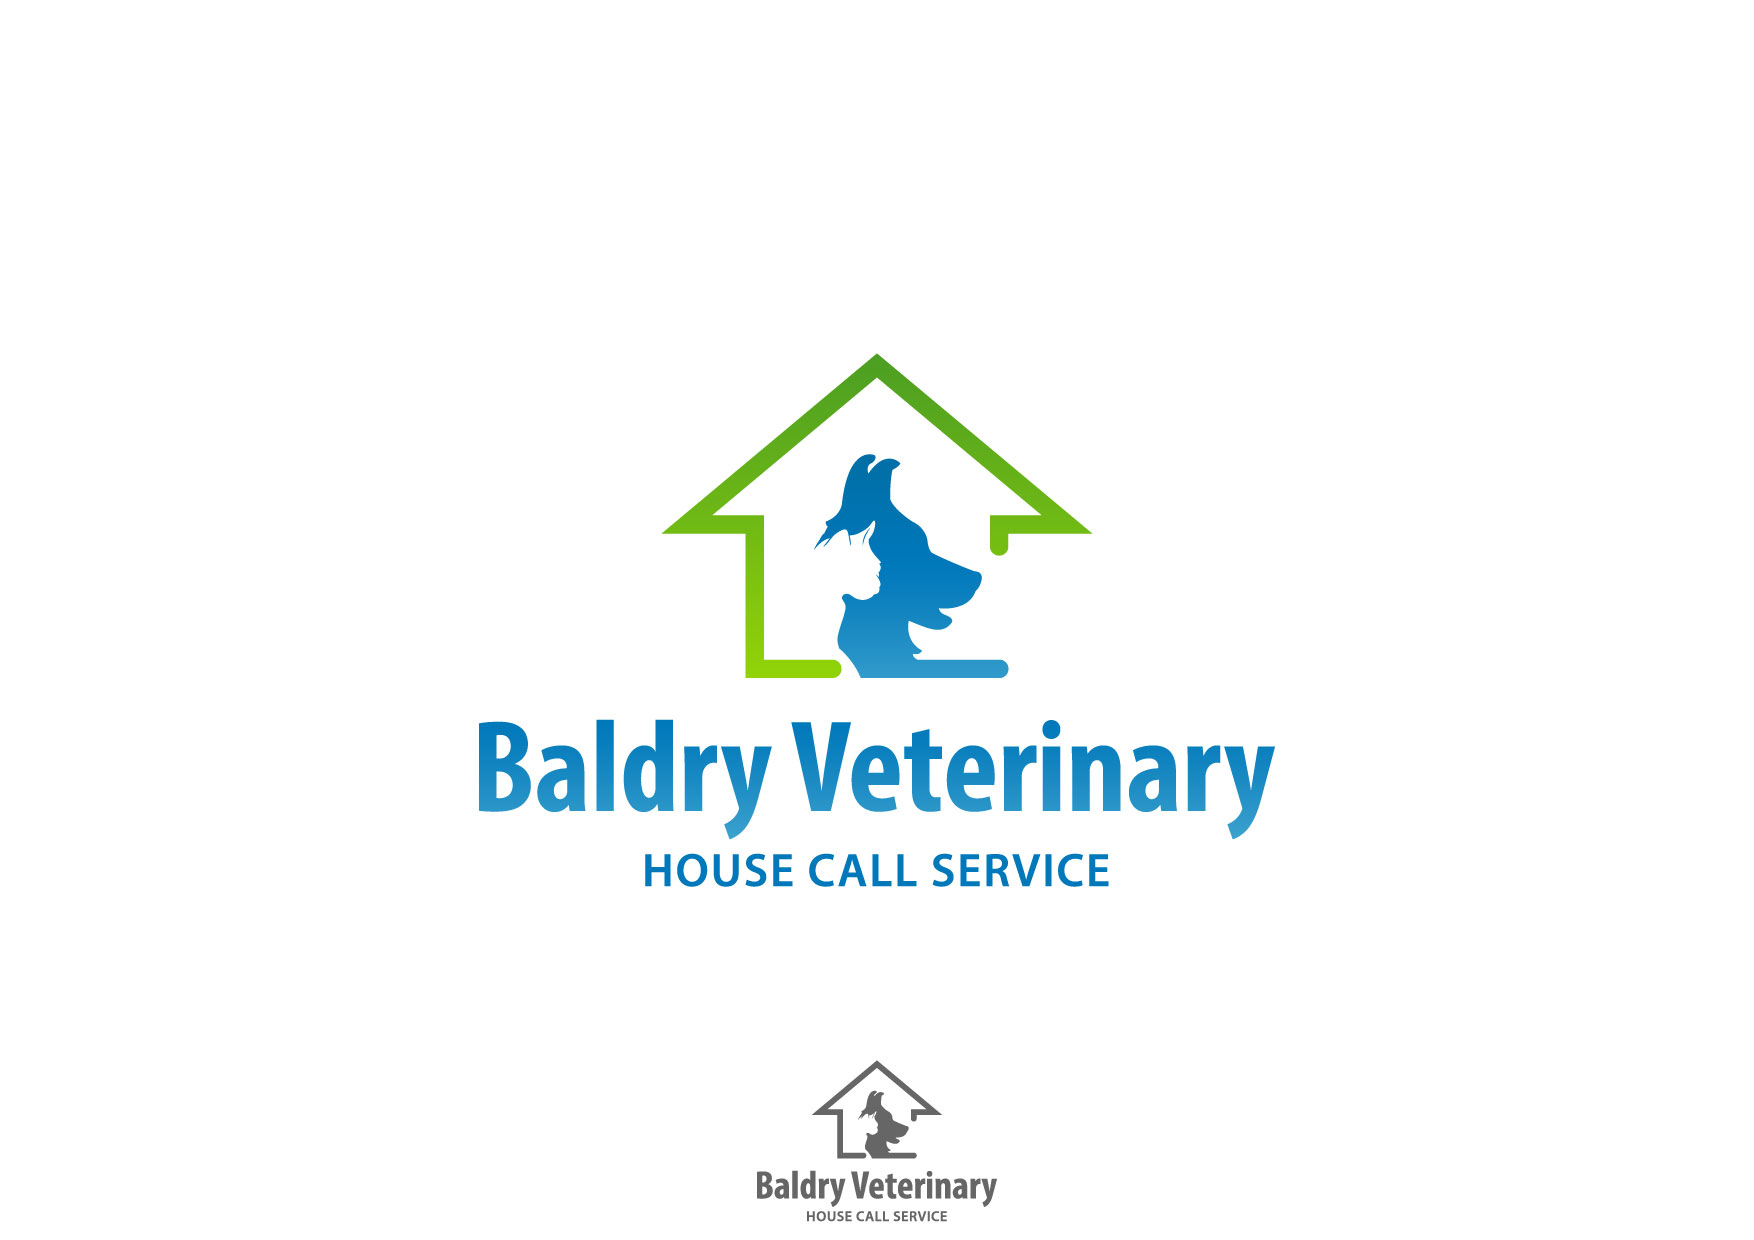 Logo Design by Nurgalih Destianto - Entry No. 75 in the Logo Design Contest Captivating Logo Design for Baldry Veterinary House Call Service.